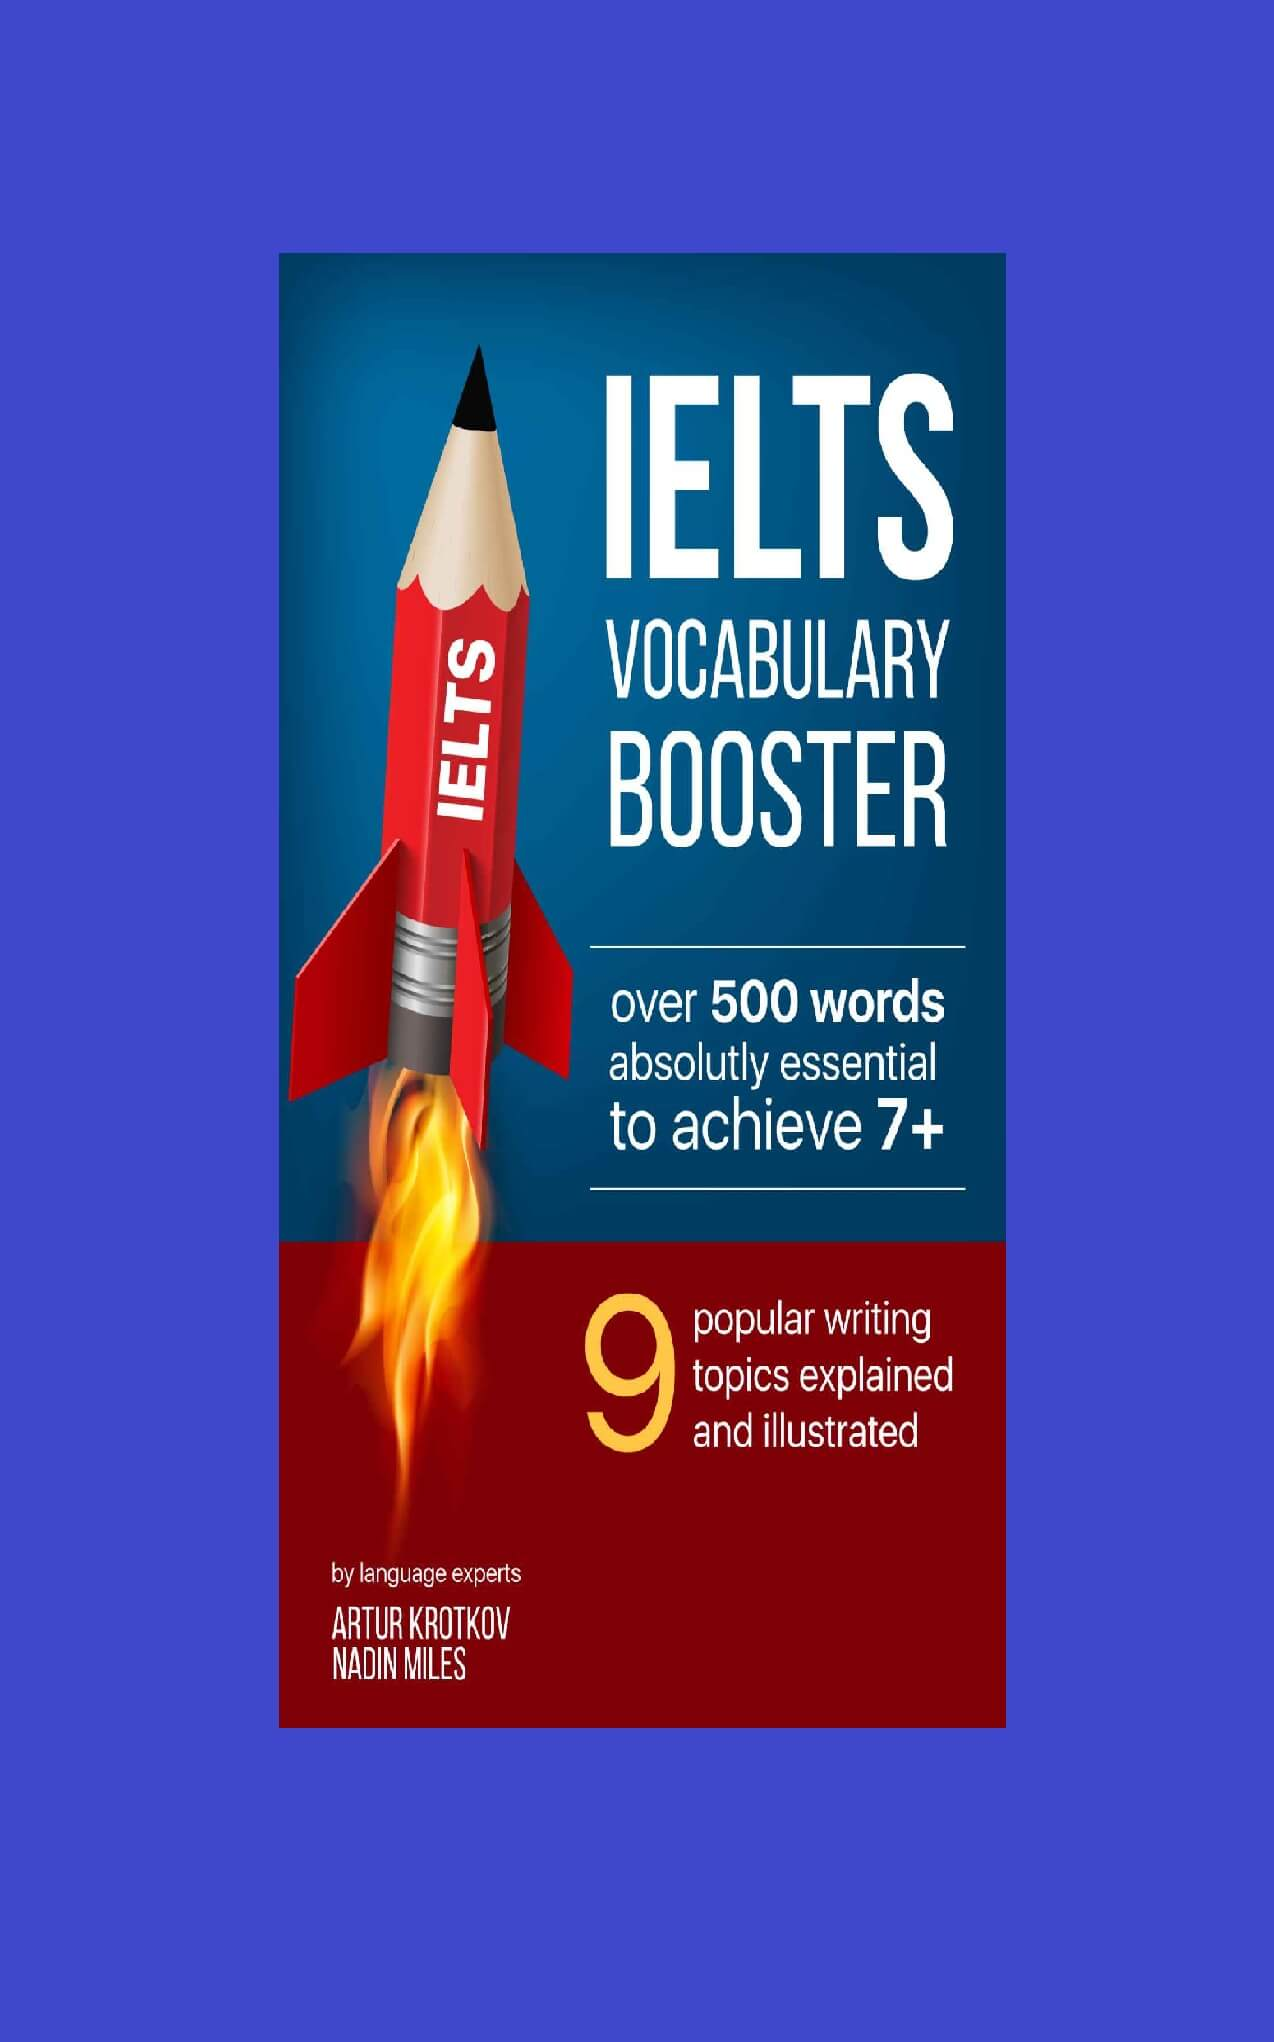 ielts vocabulary booster for ielts